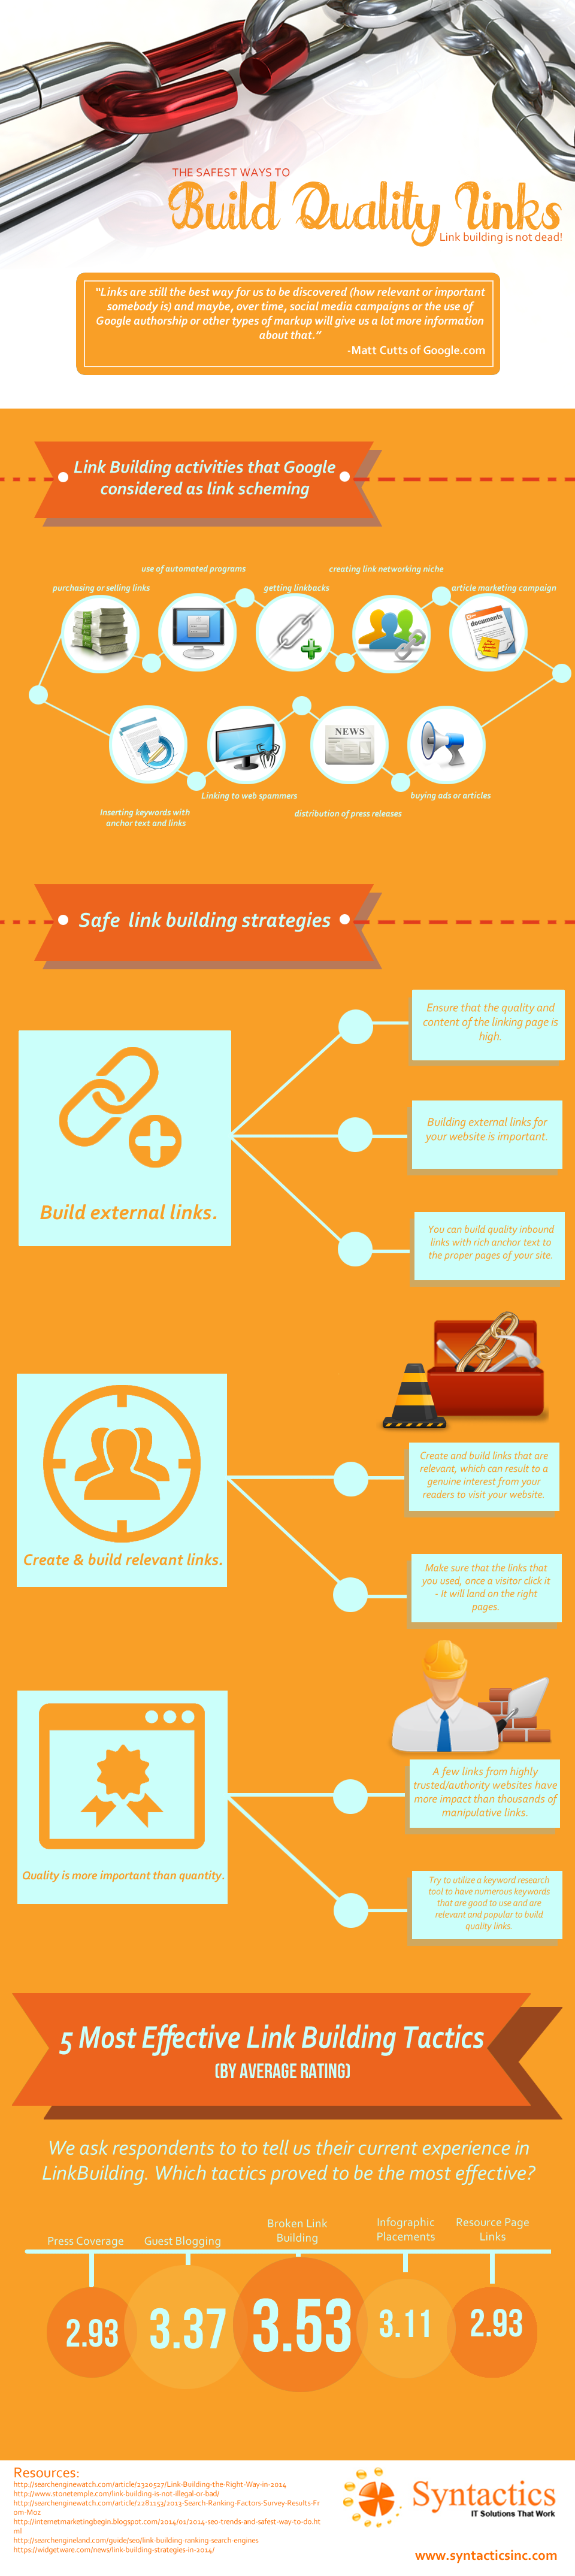 The Safest Ways to Build Quality Links This 2014